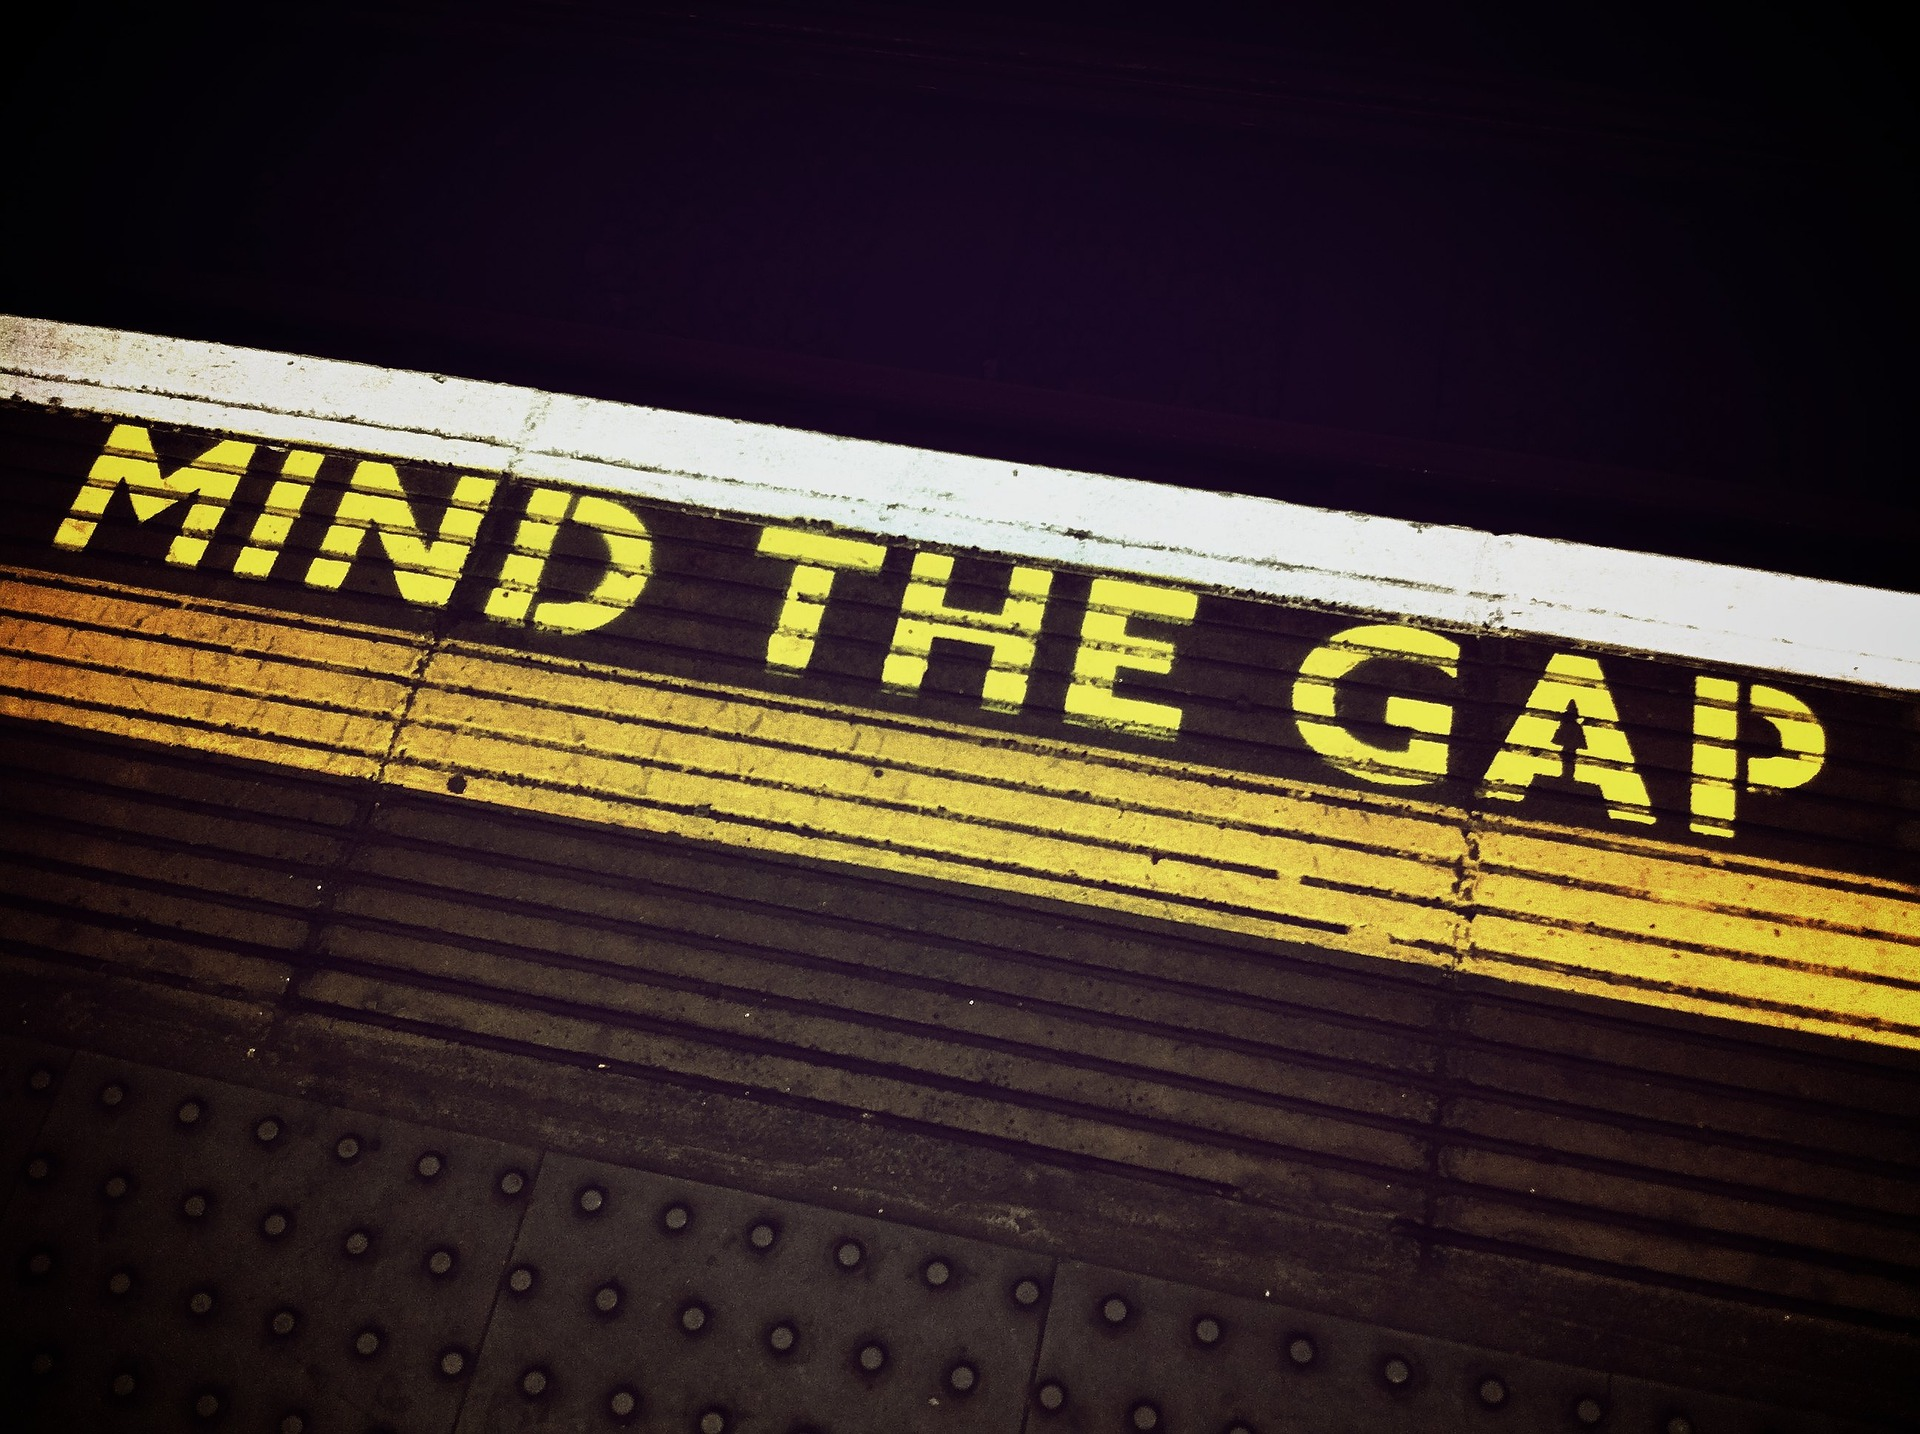 'Smarketing': why you need to bridge the gap between marketing and sales